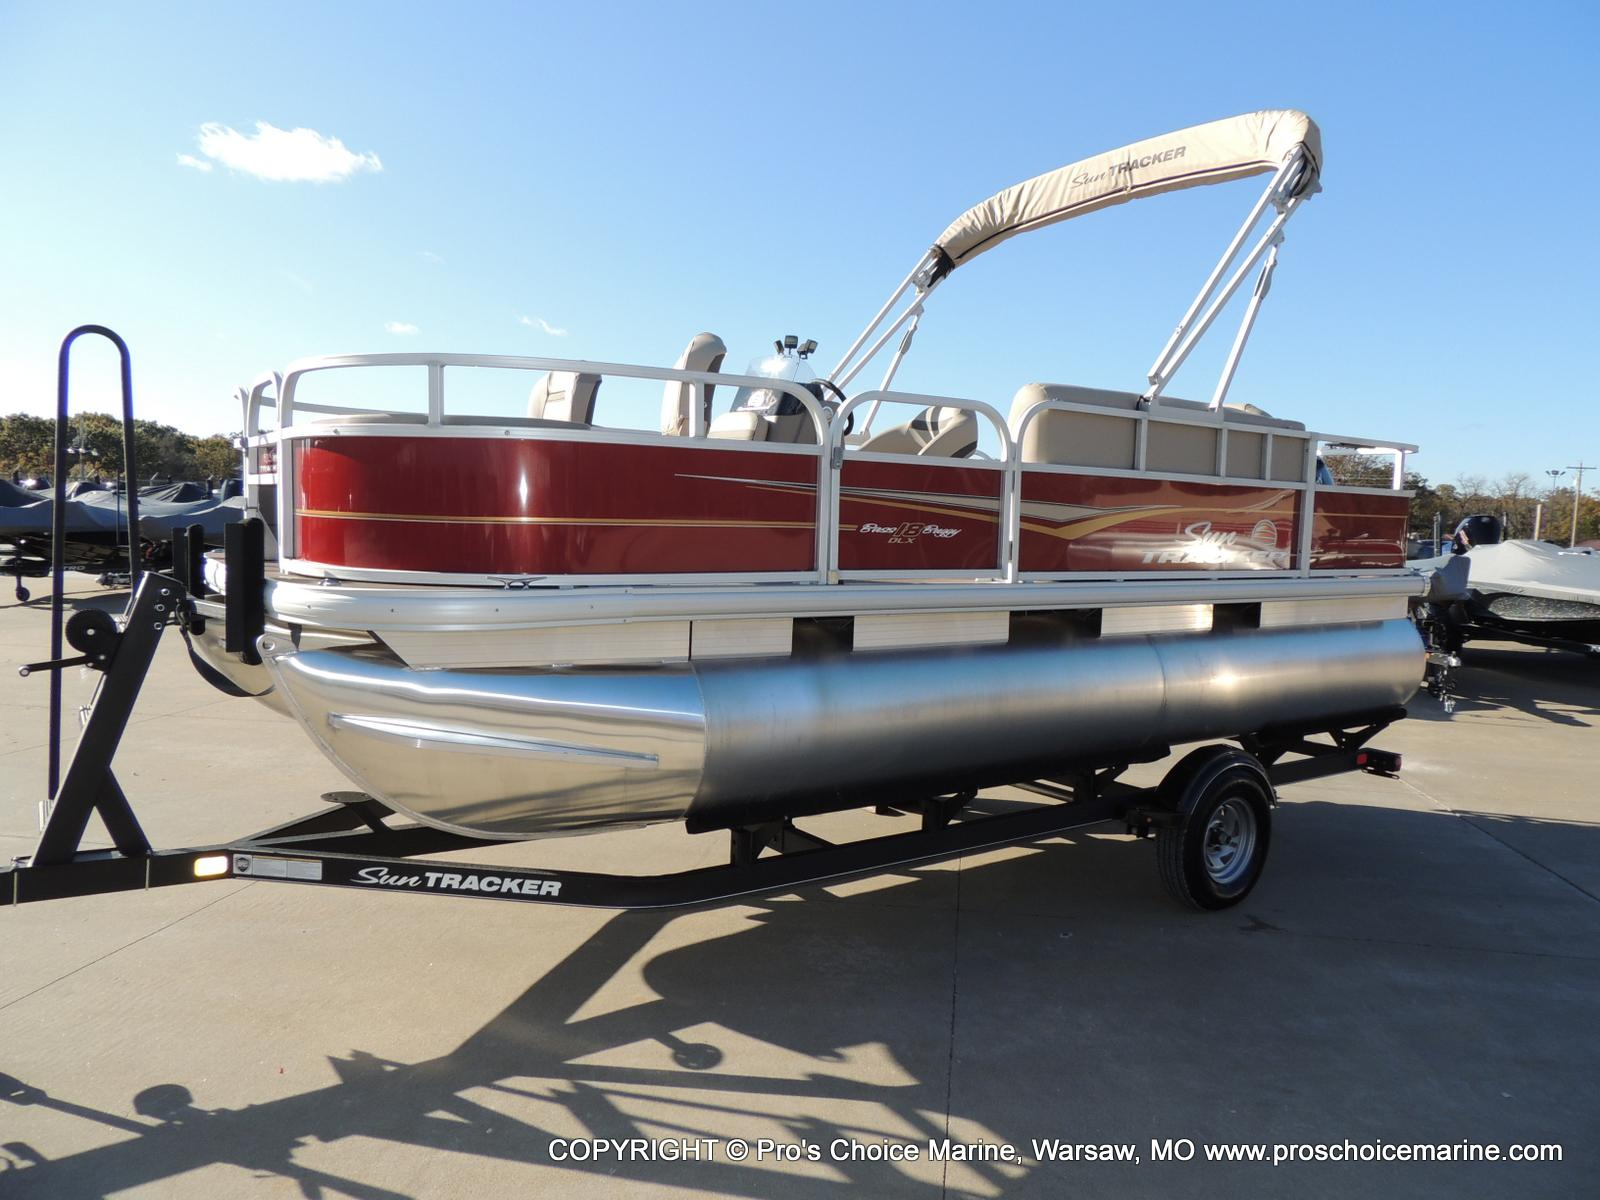 2020 Sun Tracker boat for sale, model of the boat is Bass Buggy 18 DLX & Image # 41 of 50